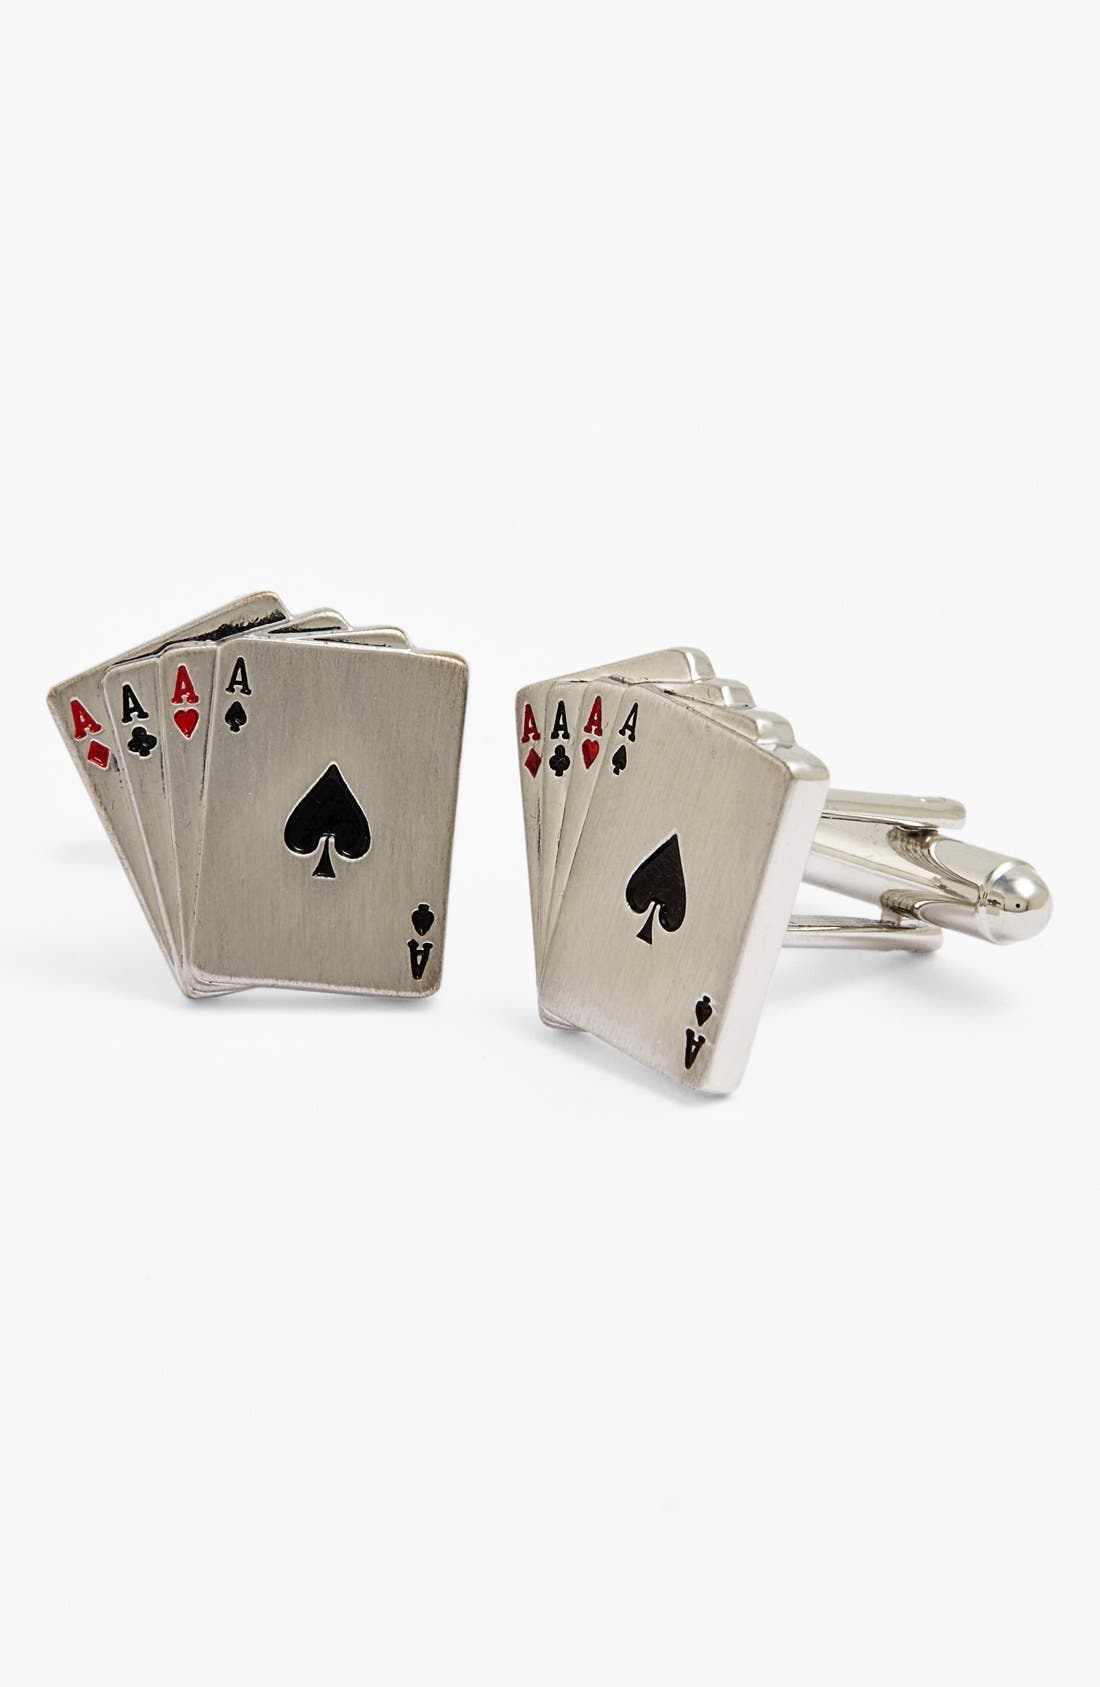 LINK UP 'Aces Wild' Cuff Links